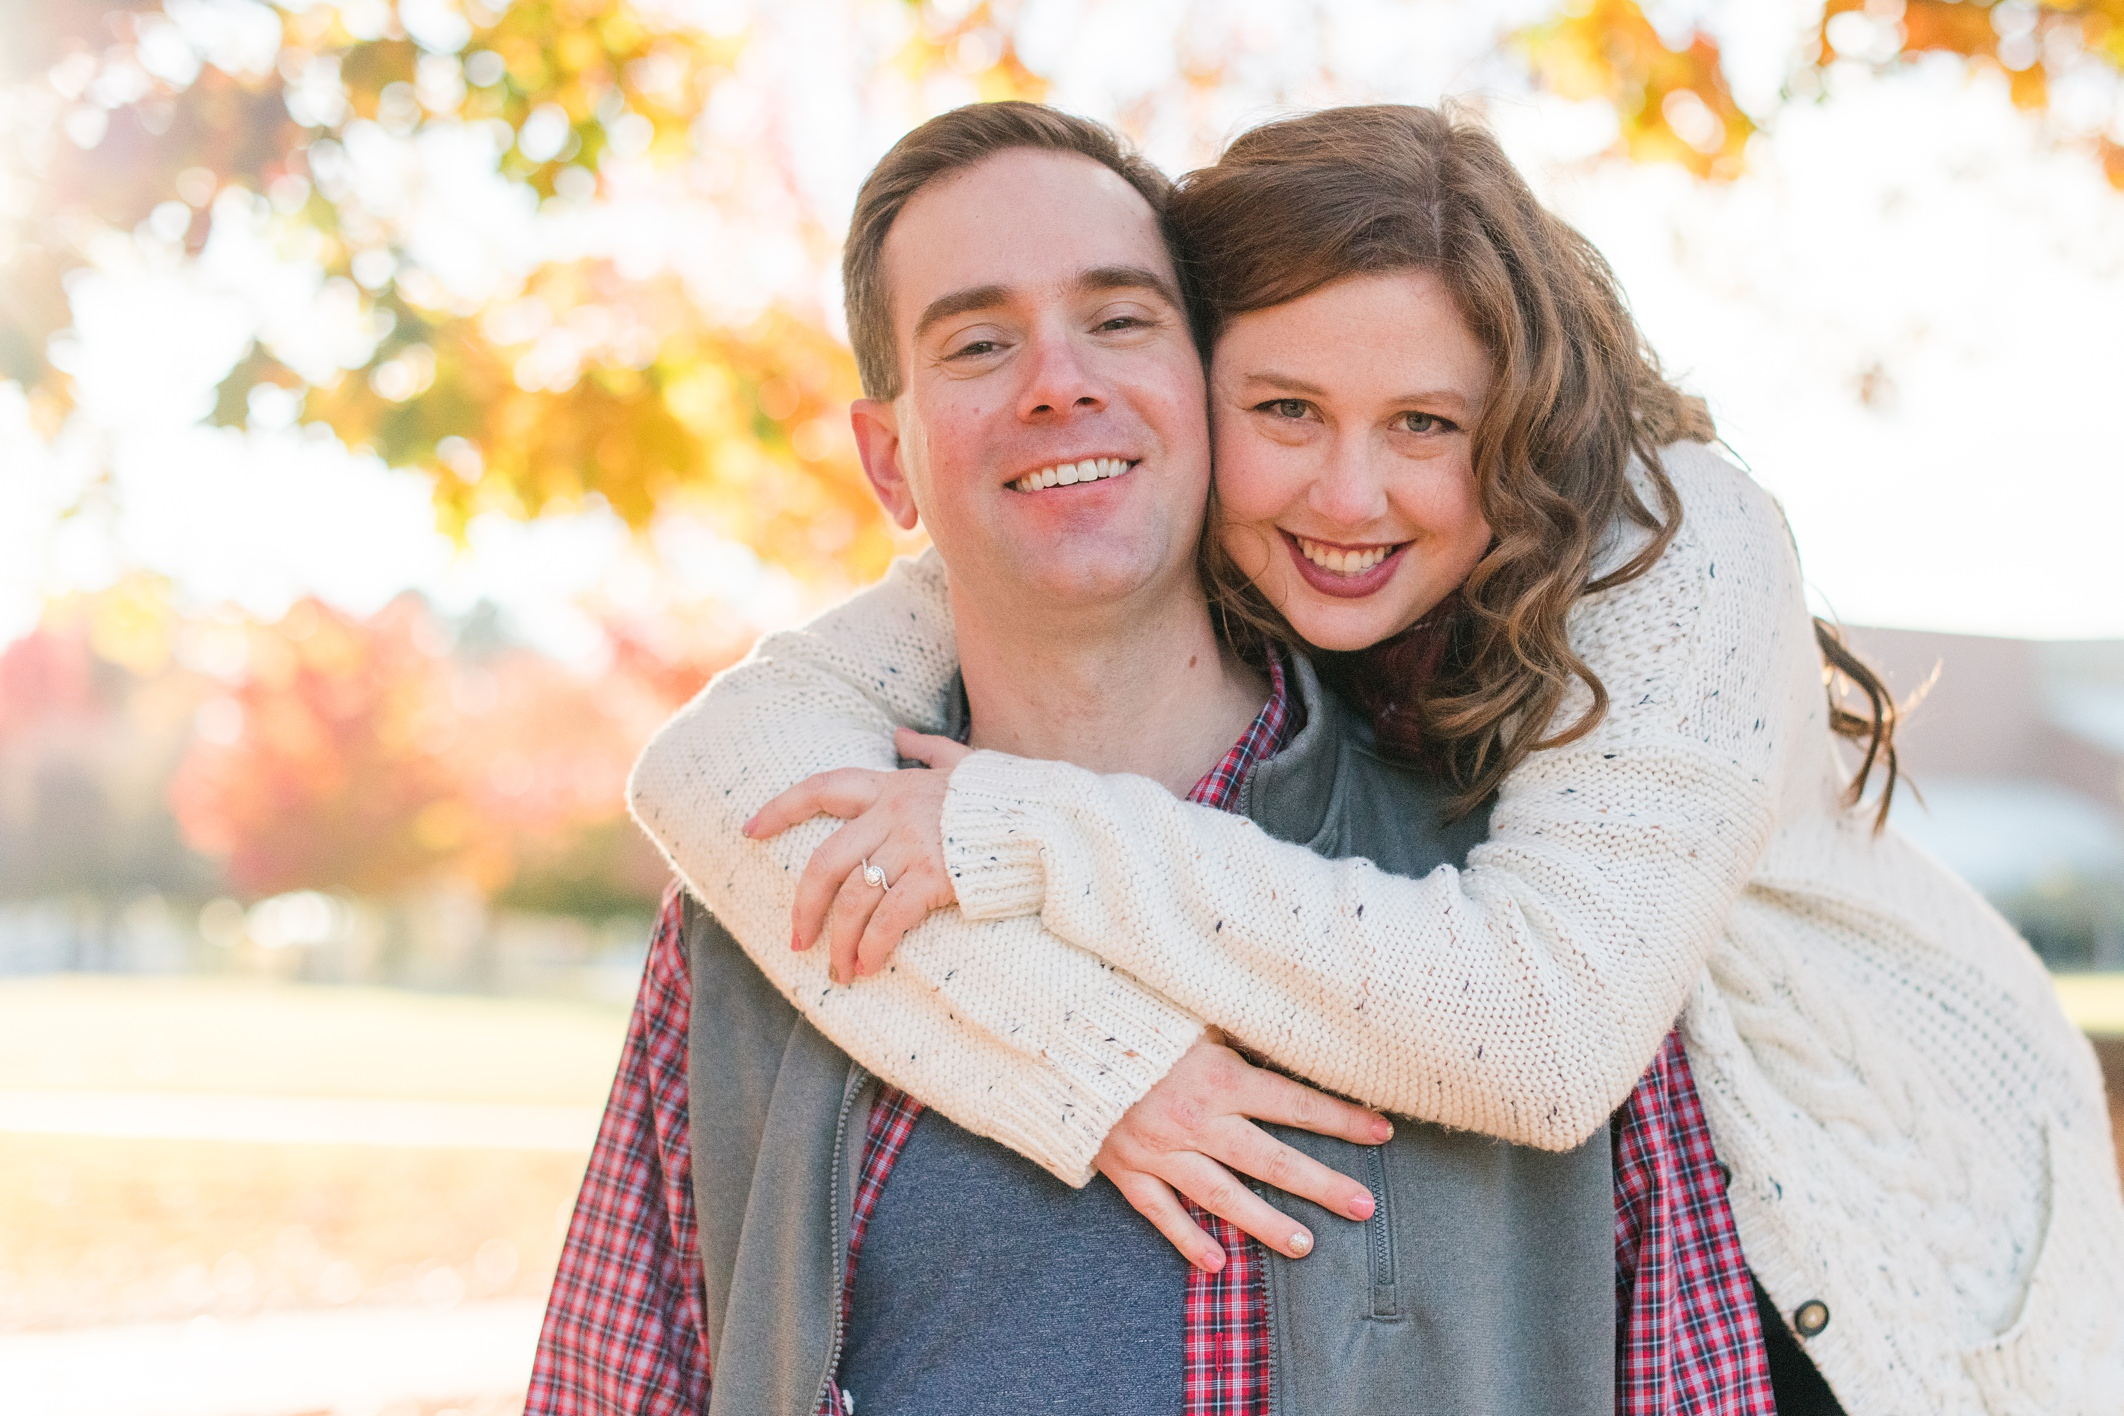 Kevin + Audrey Engagement Photos in Siloam Springs, AR